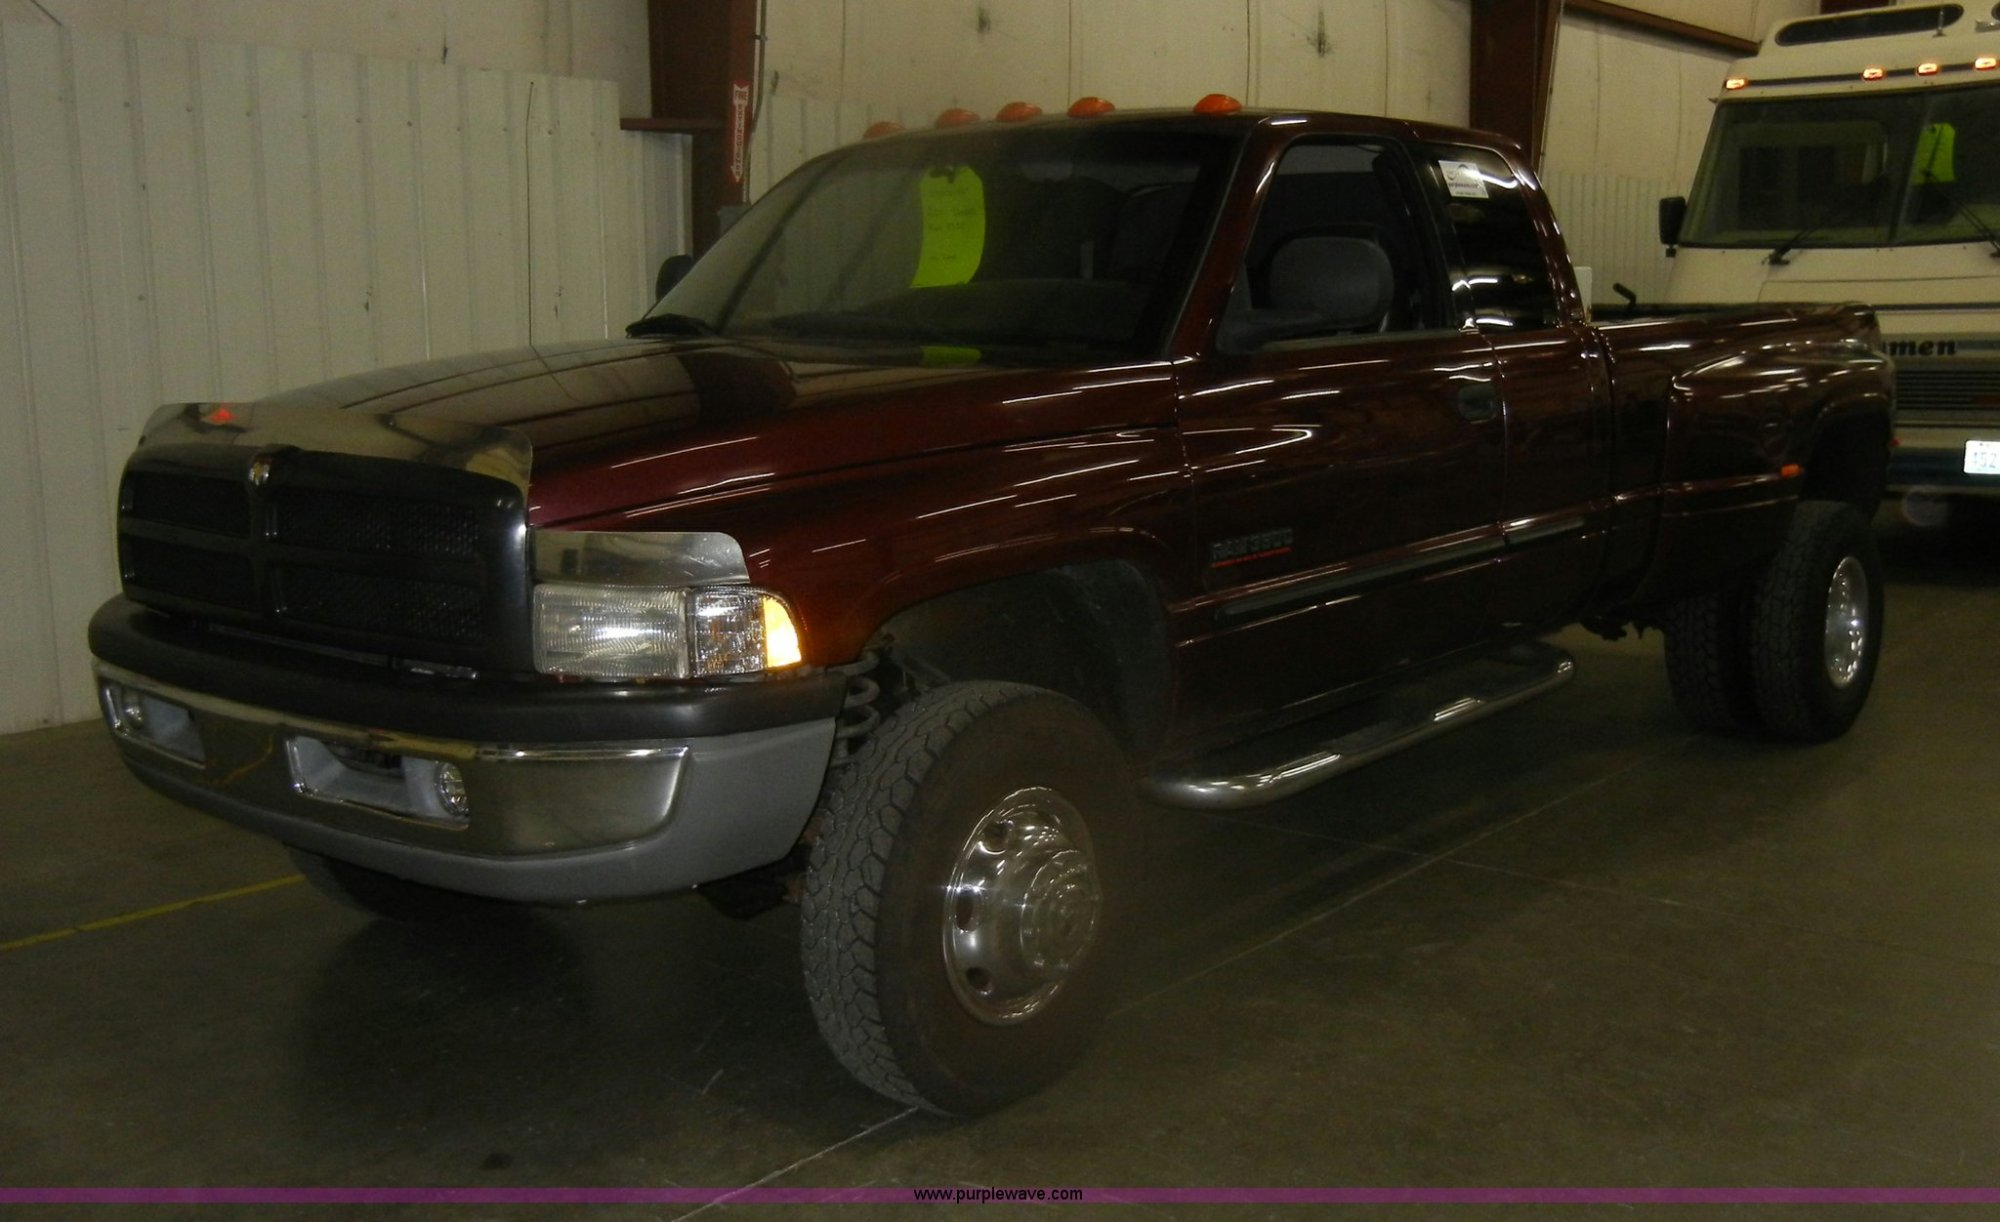 hight resolution of d4678 image for item d4678 2001 dodge ram laramie 3500 slt extended cab